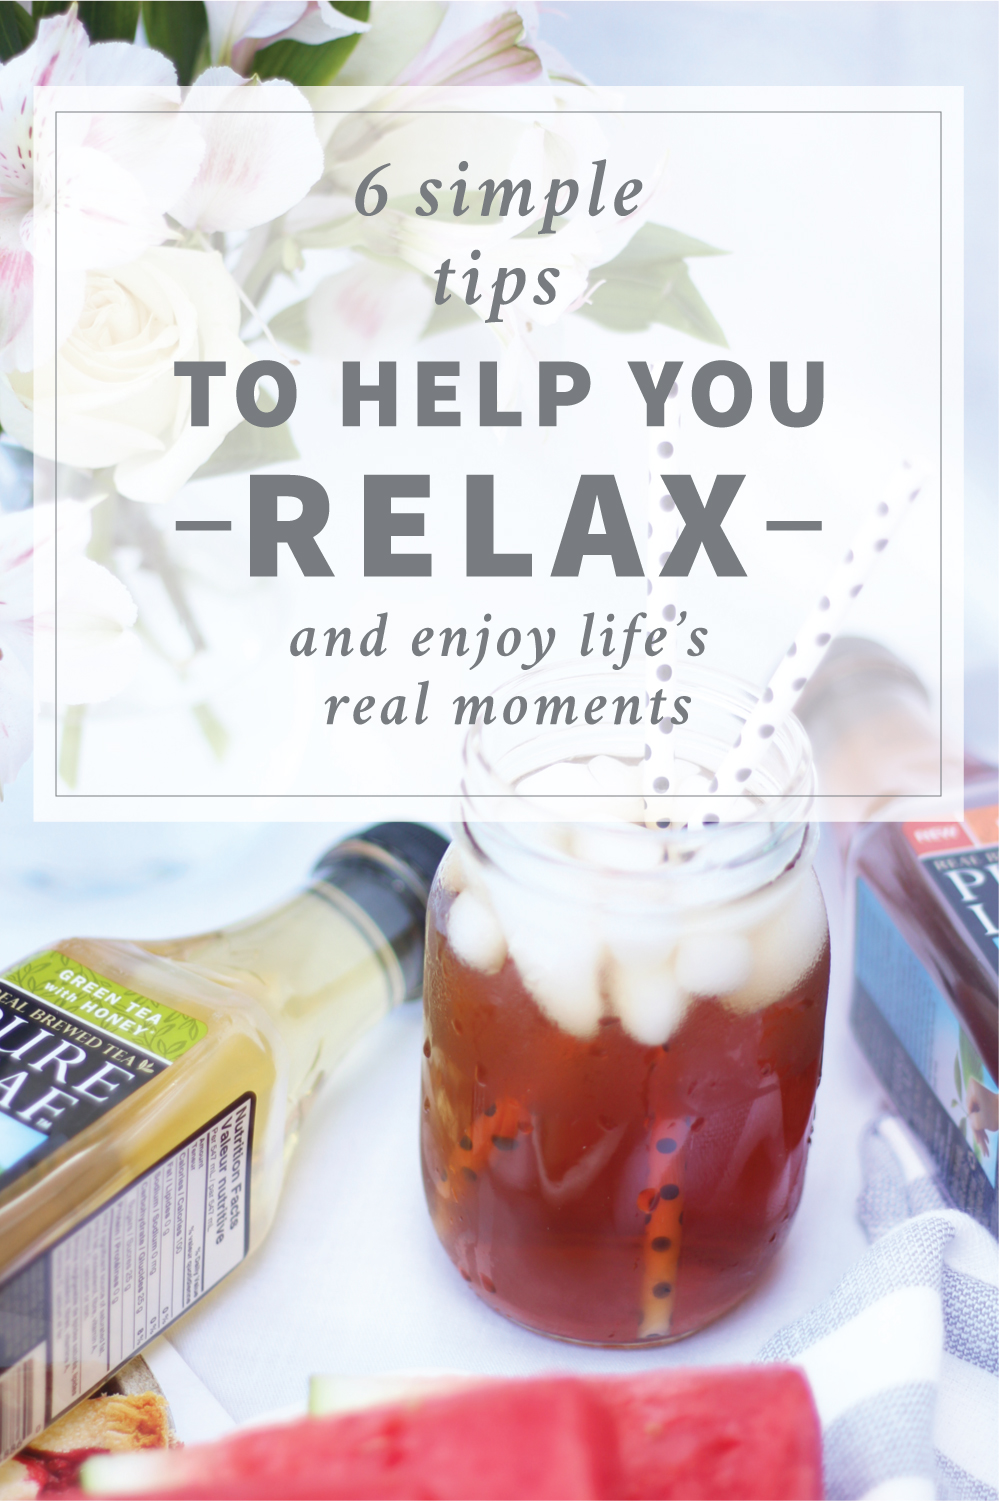 6 simple relaxation tips - how to relax and enjoy real moments in life